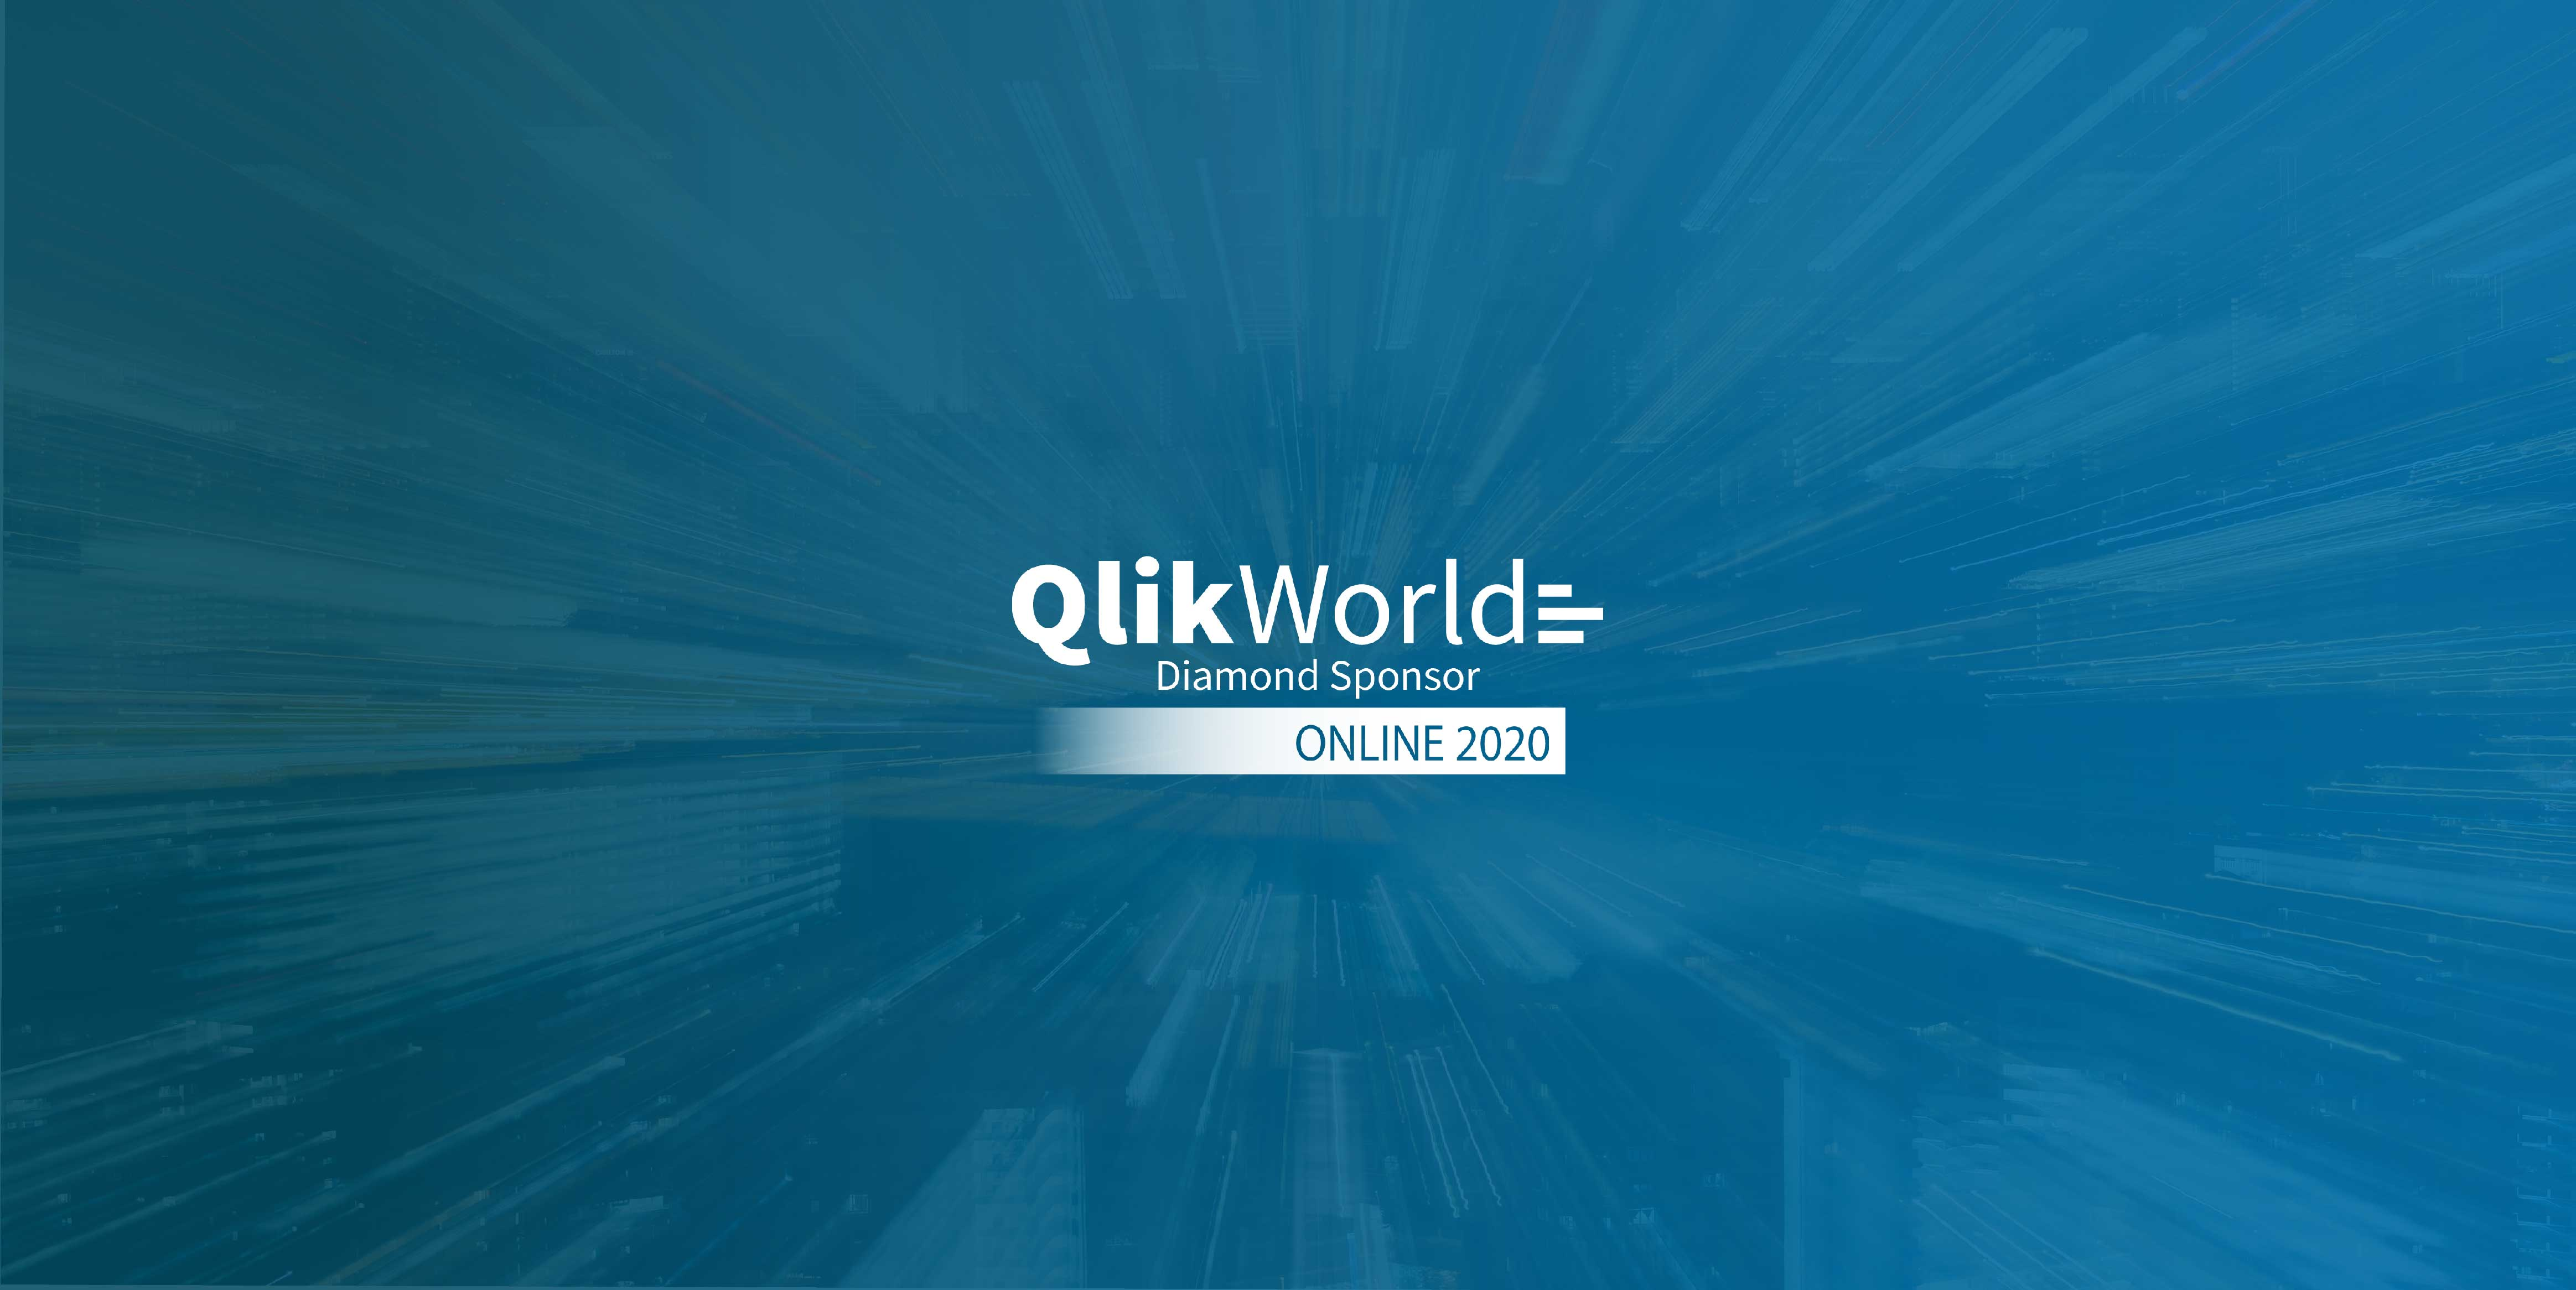 SDG Group QlikWorld Online Diamond Sponsor